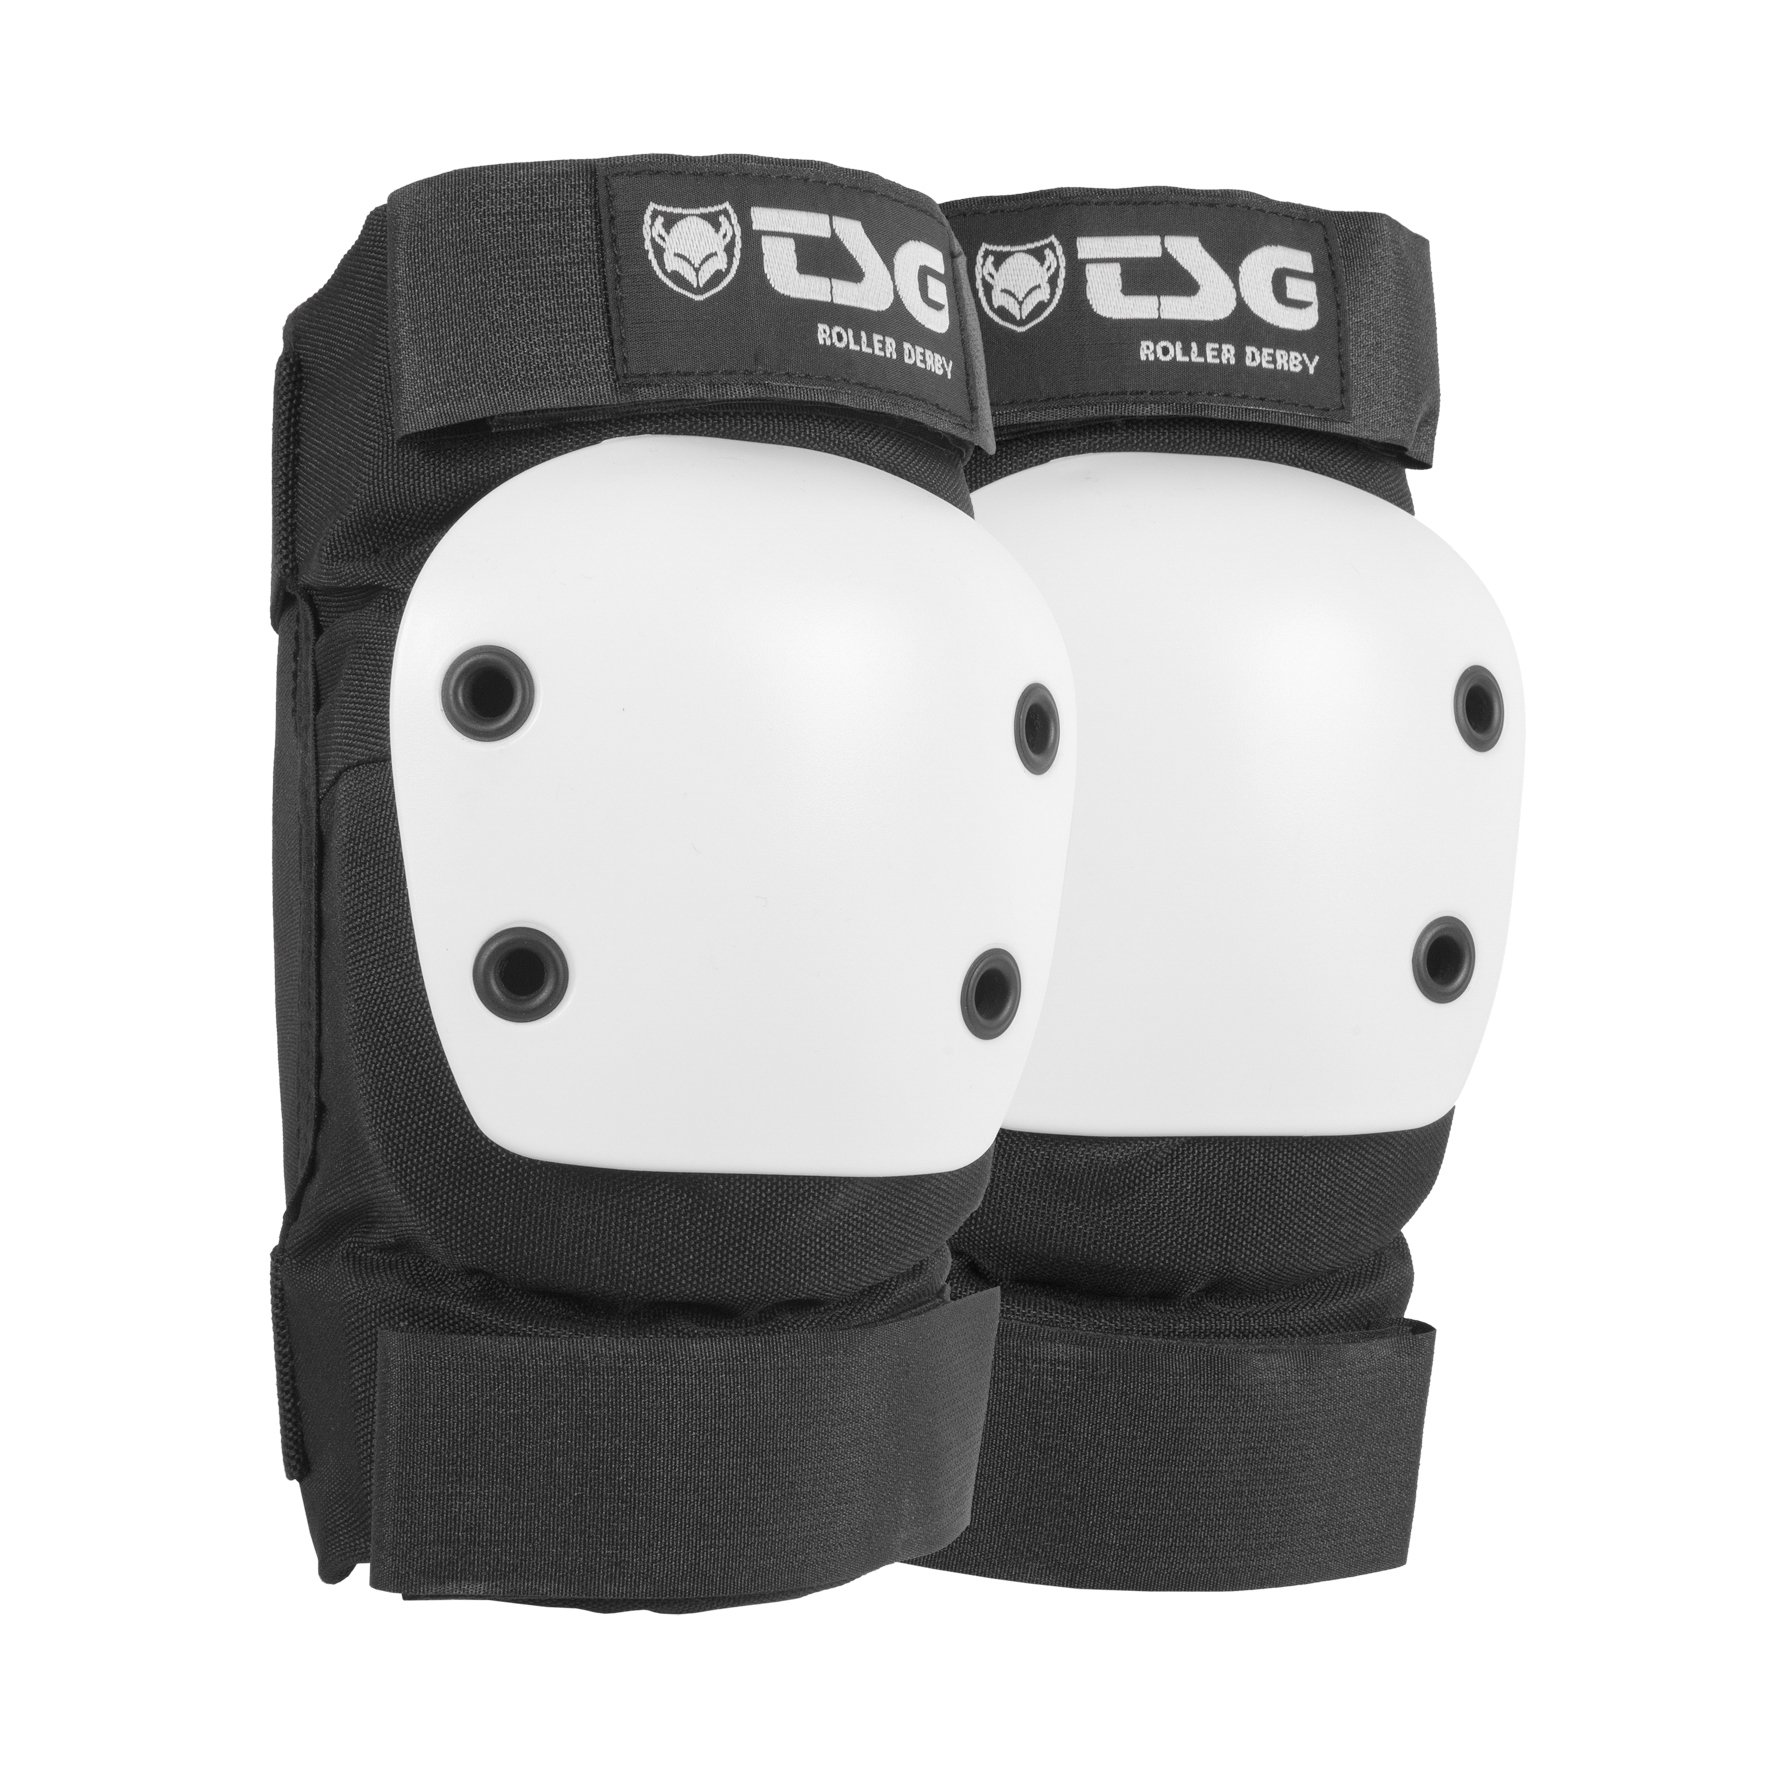 TSG Kneepad Roller Derby 2.0 - Pads for Skateboard (black, XS)